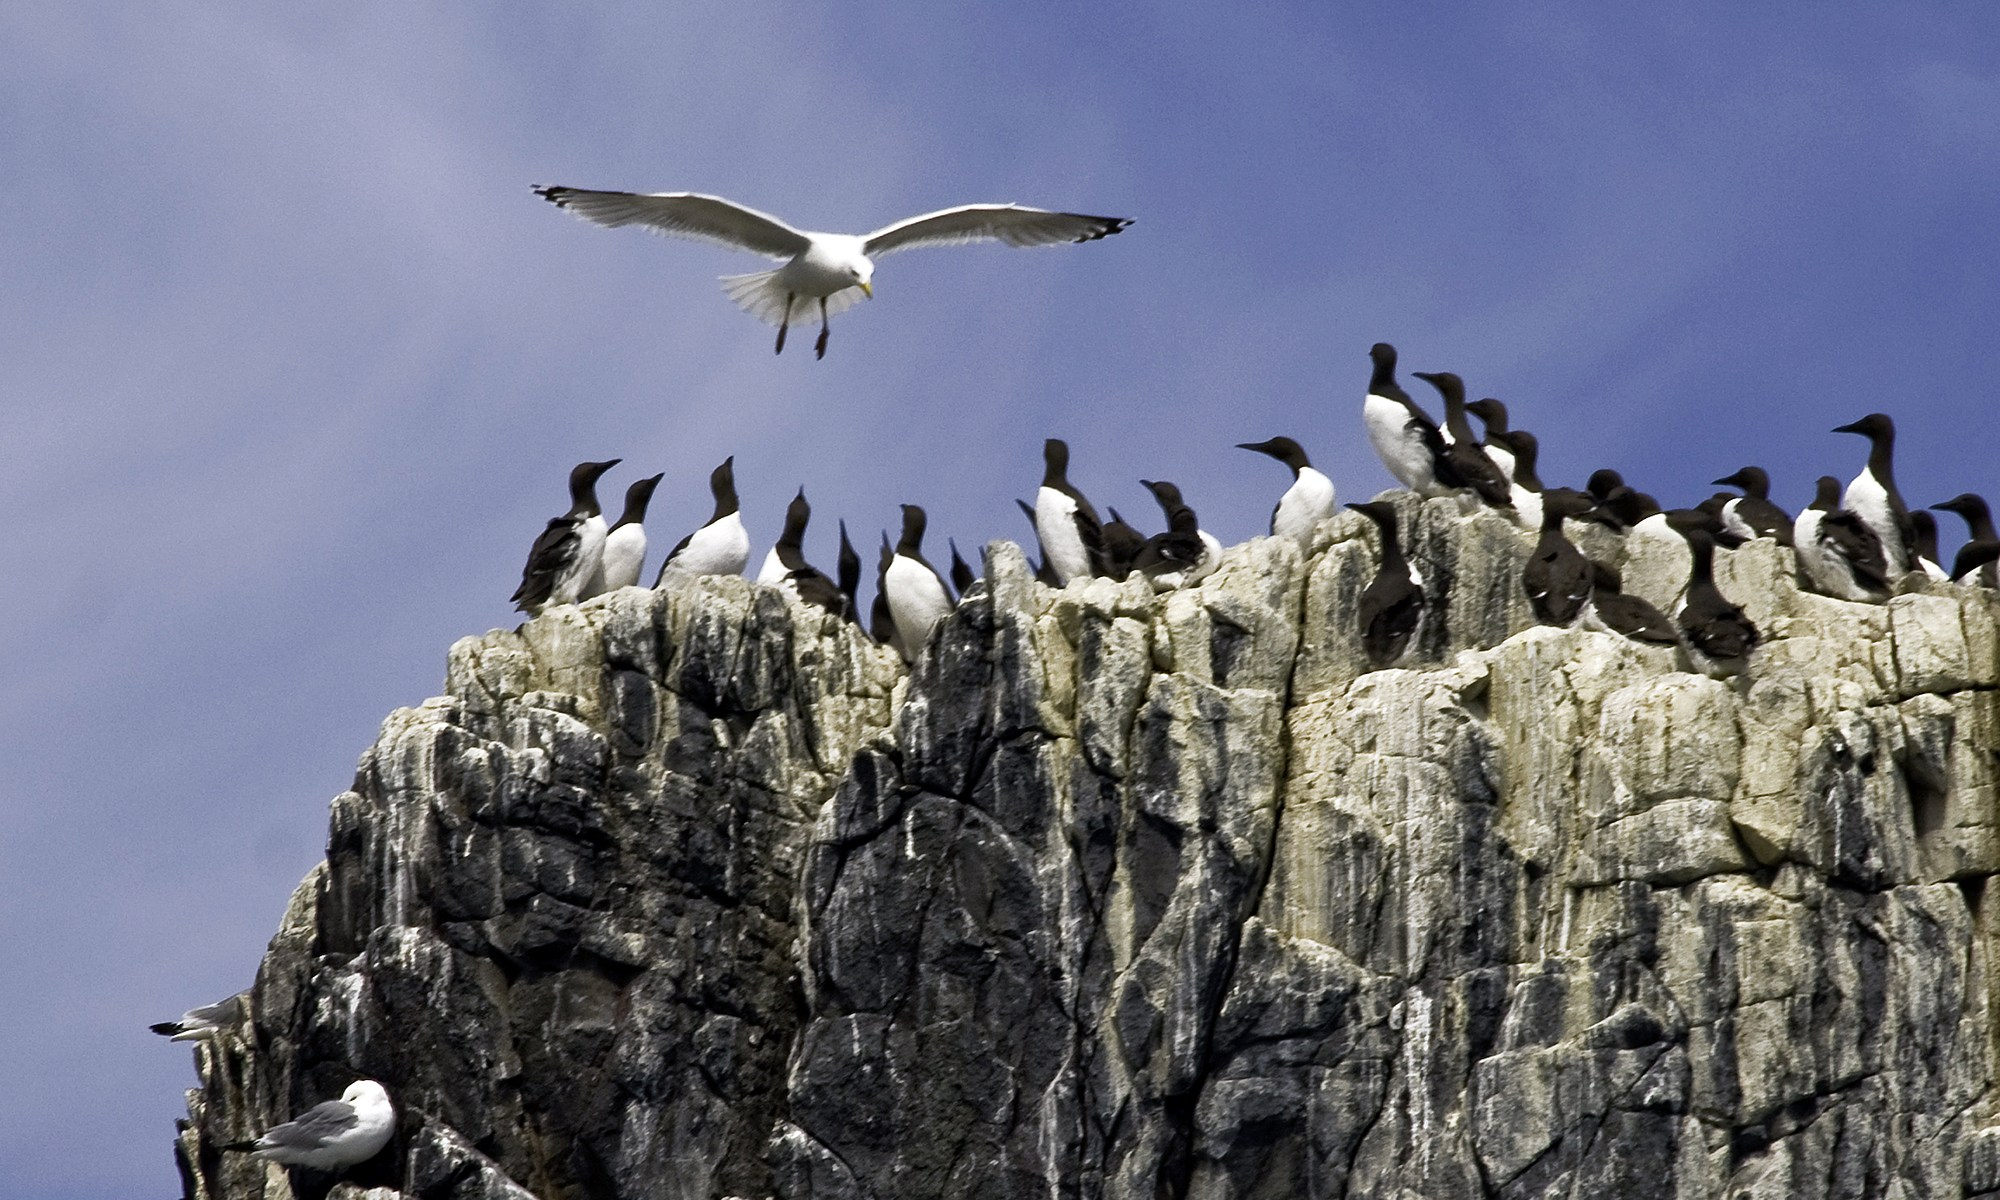 Kittiwake vs. Guillemots on the Farne Islands